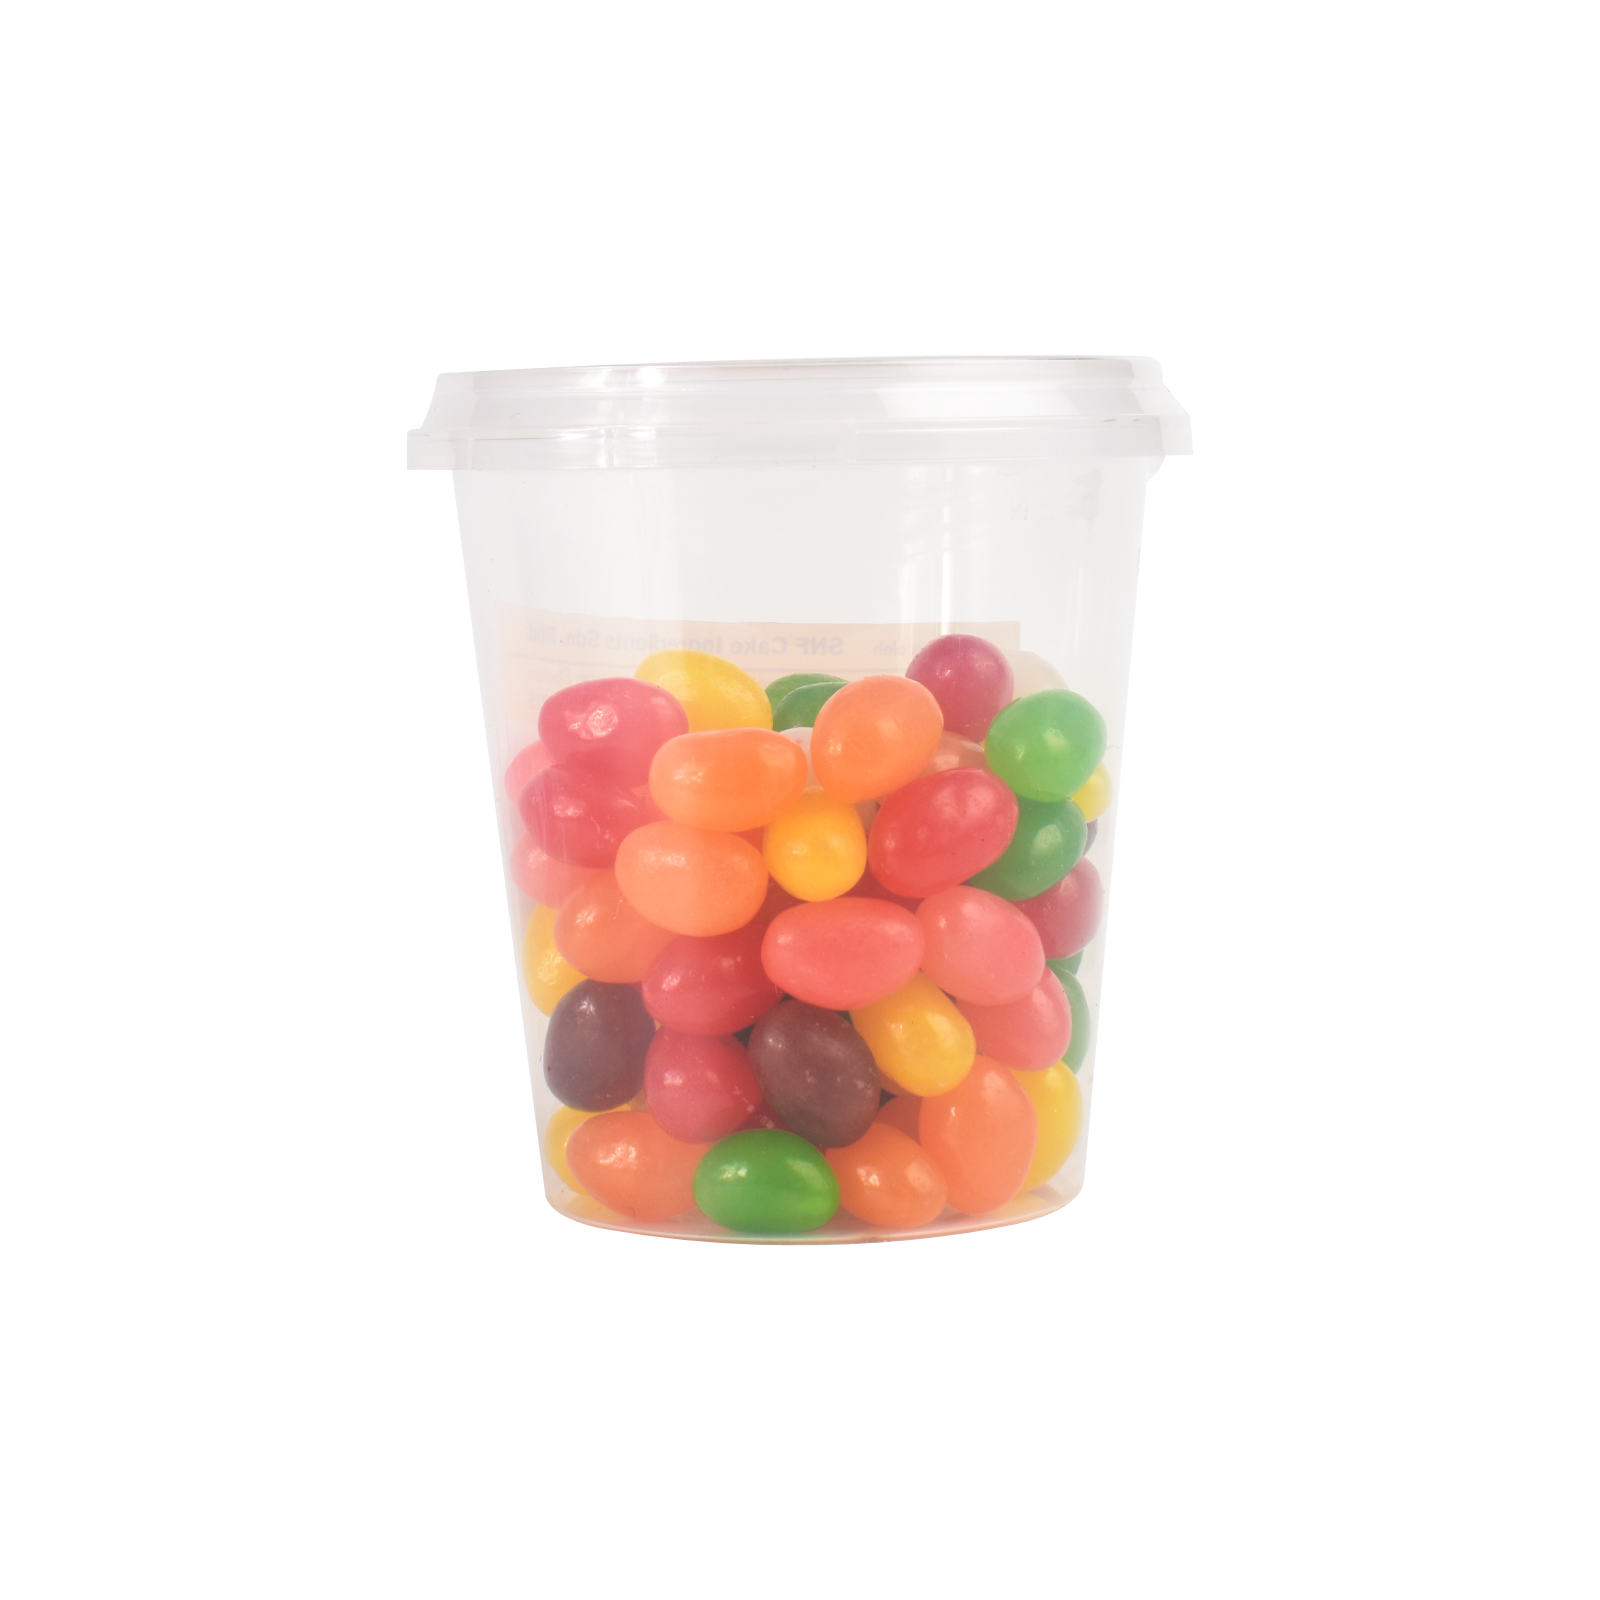 jelly bean.png